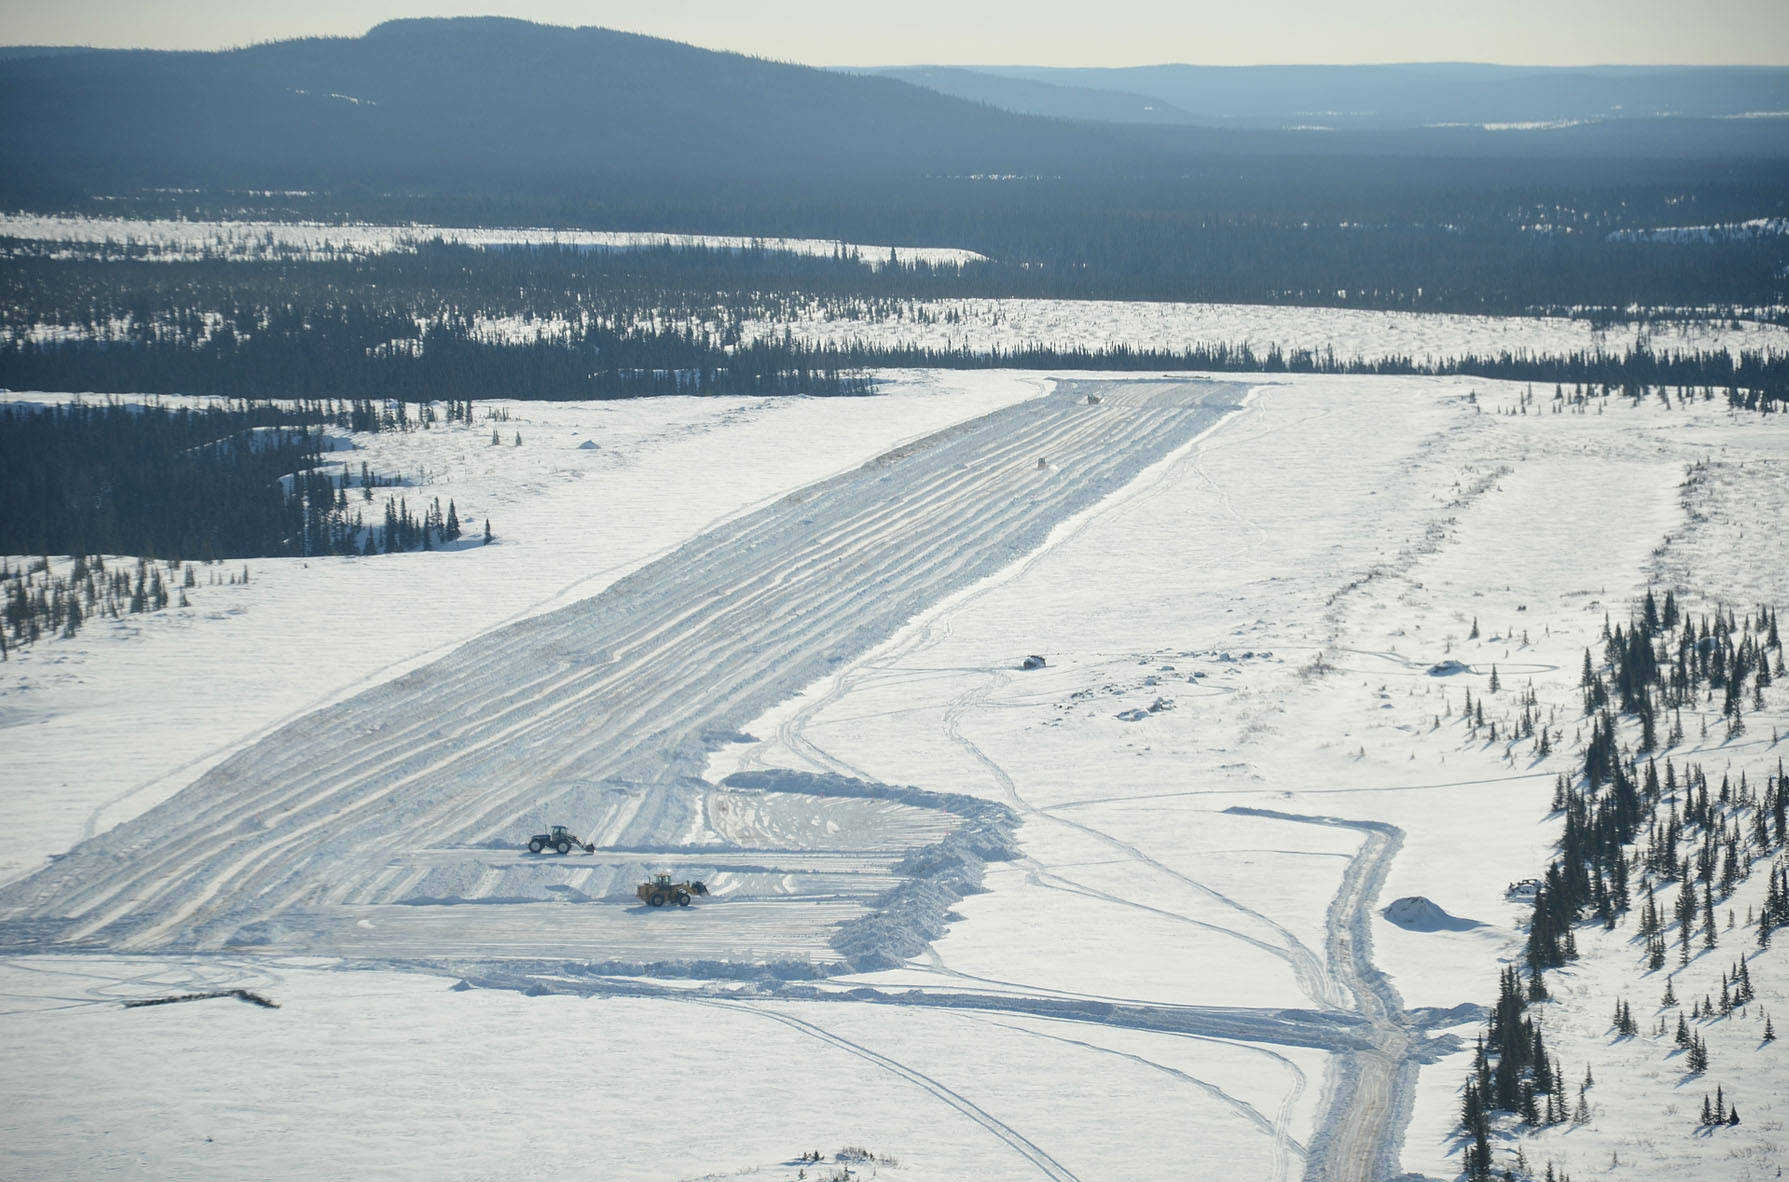 The Practice Training Area can be activated any time throughout the year for military training. The volume of snow cleared from the sand runway every winter makes urban snow removal seem insignificant. PHOTO: DND